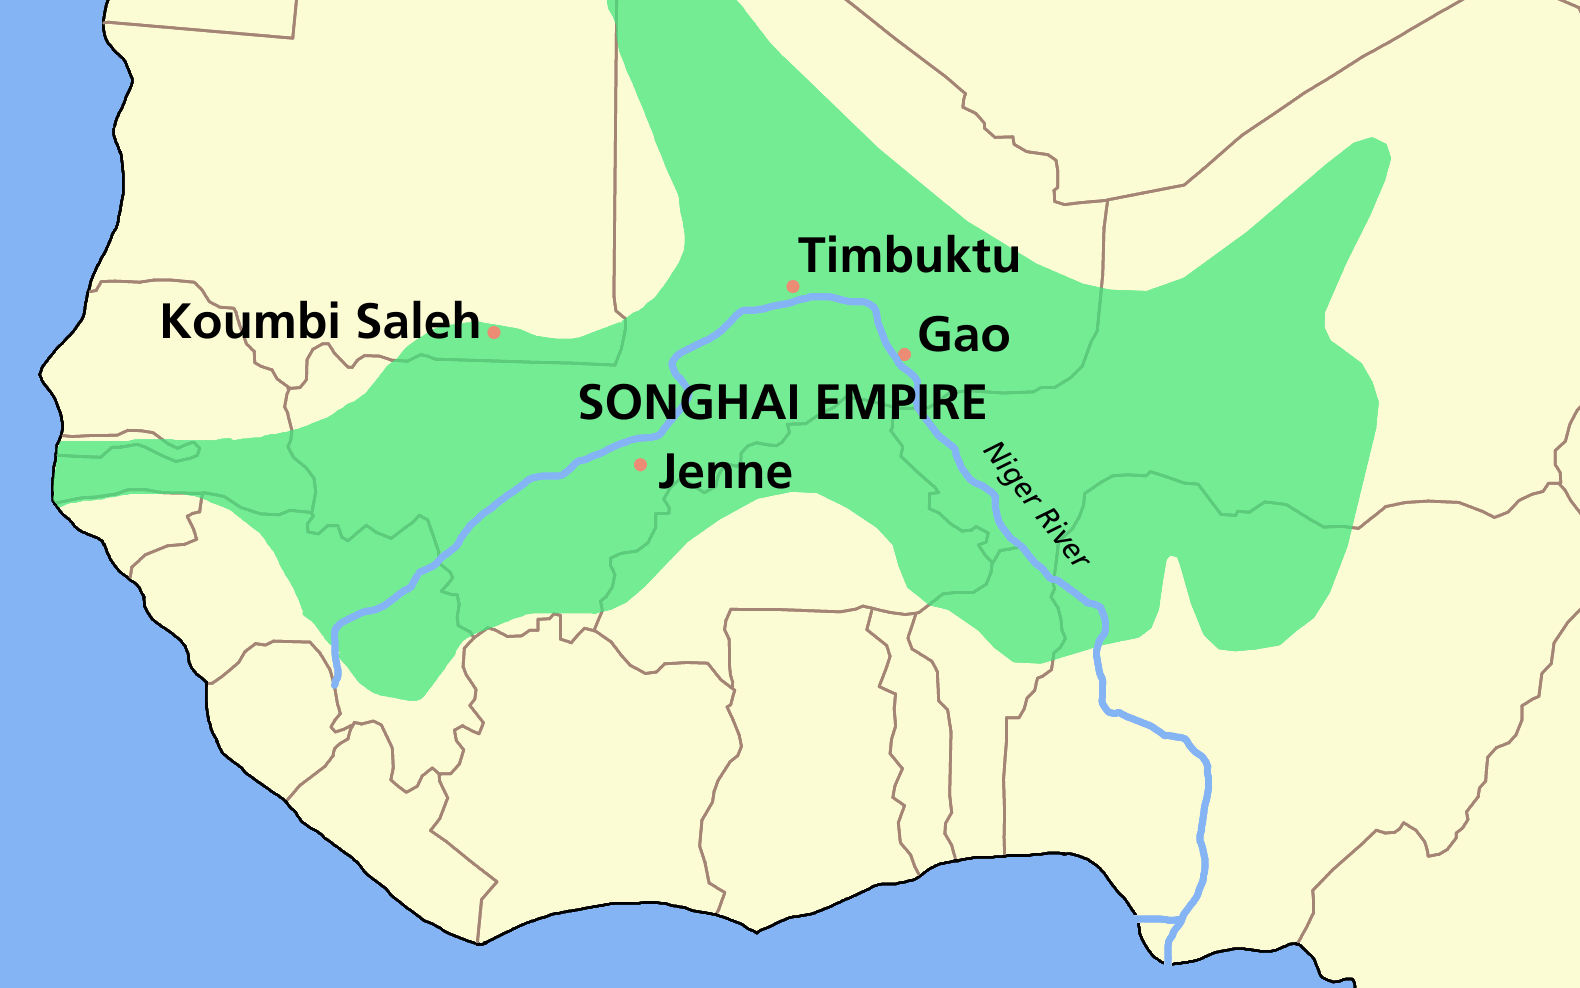 File:SONGHAI empire map.PNG - Wikipedia, the free encyclopedia